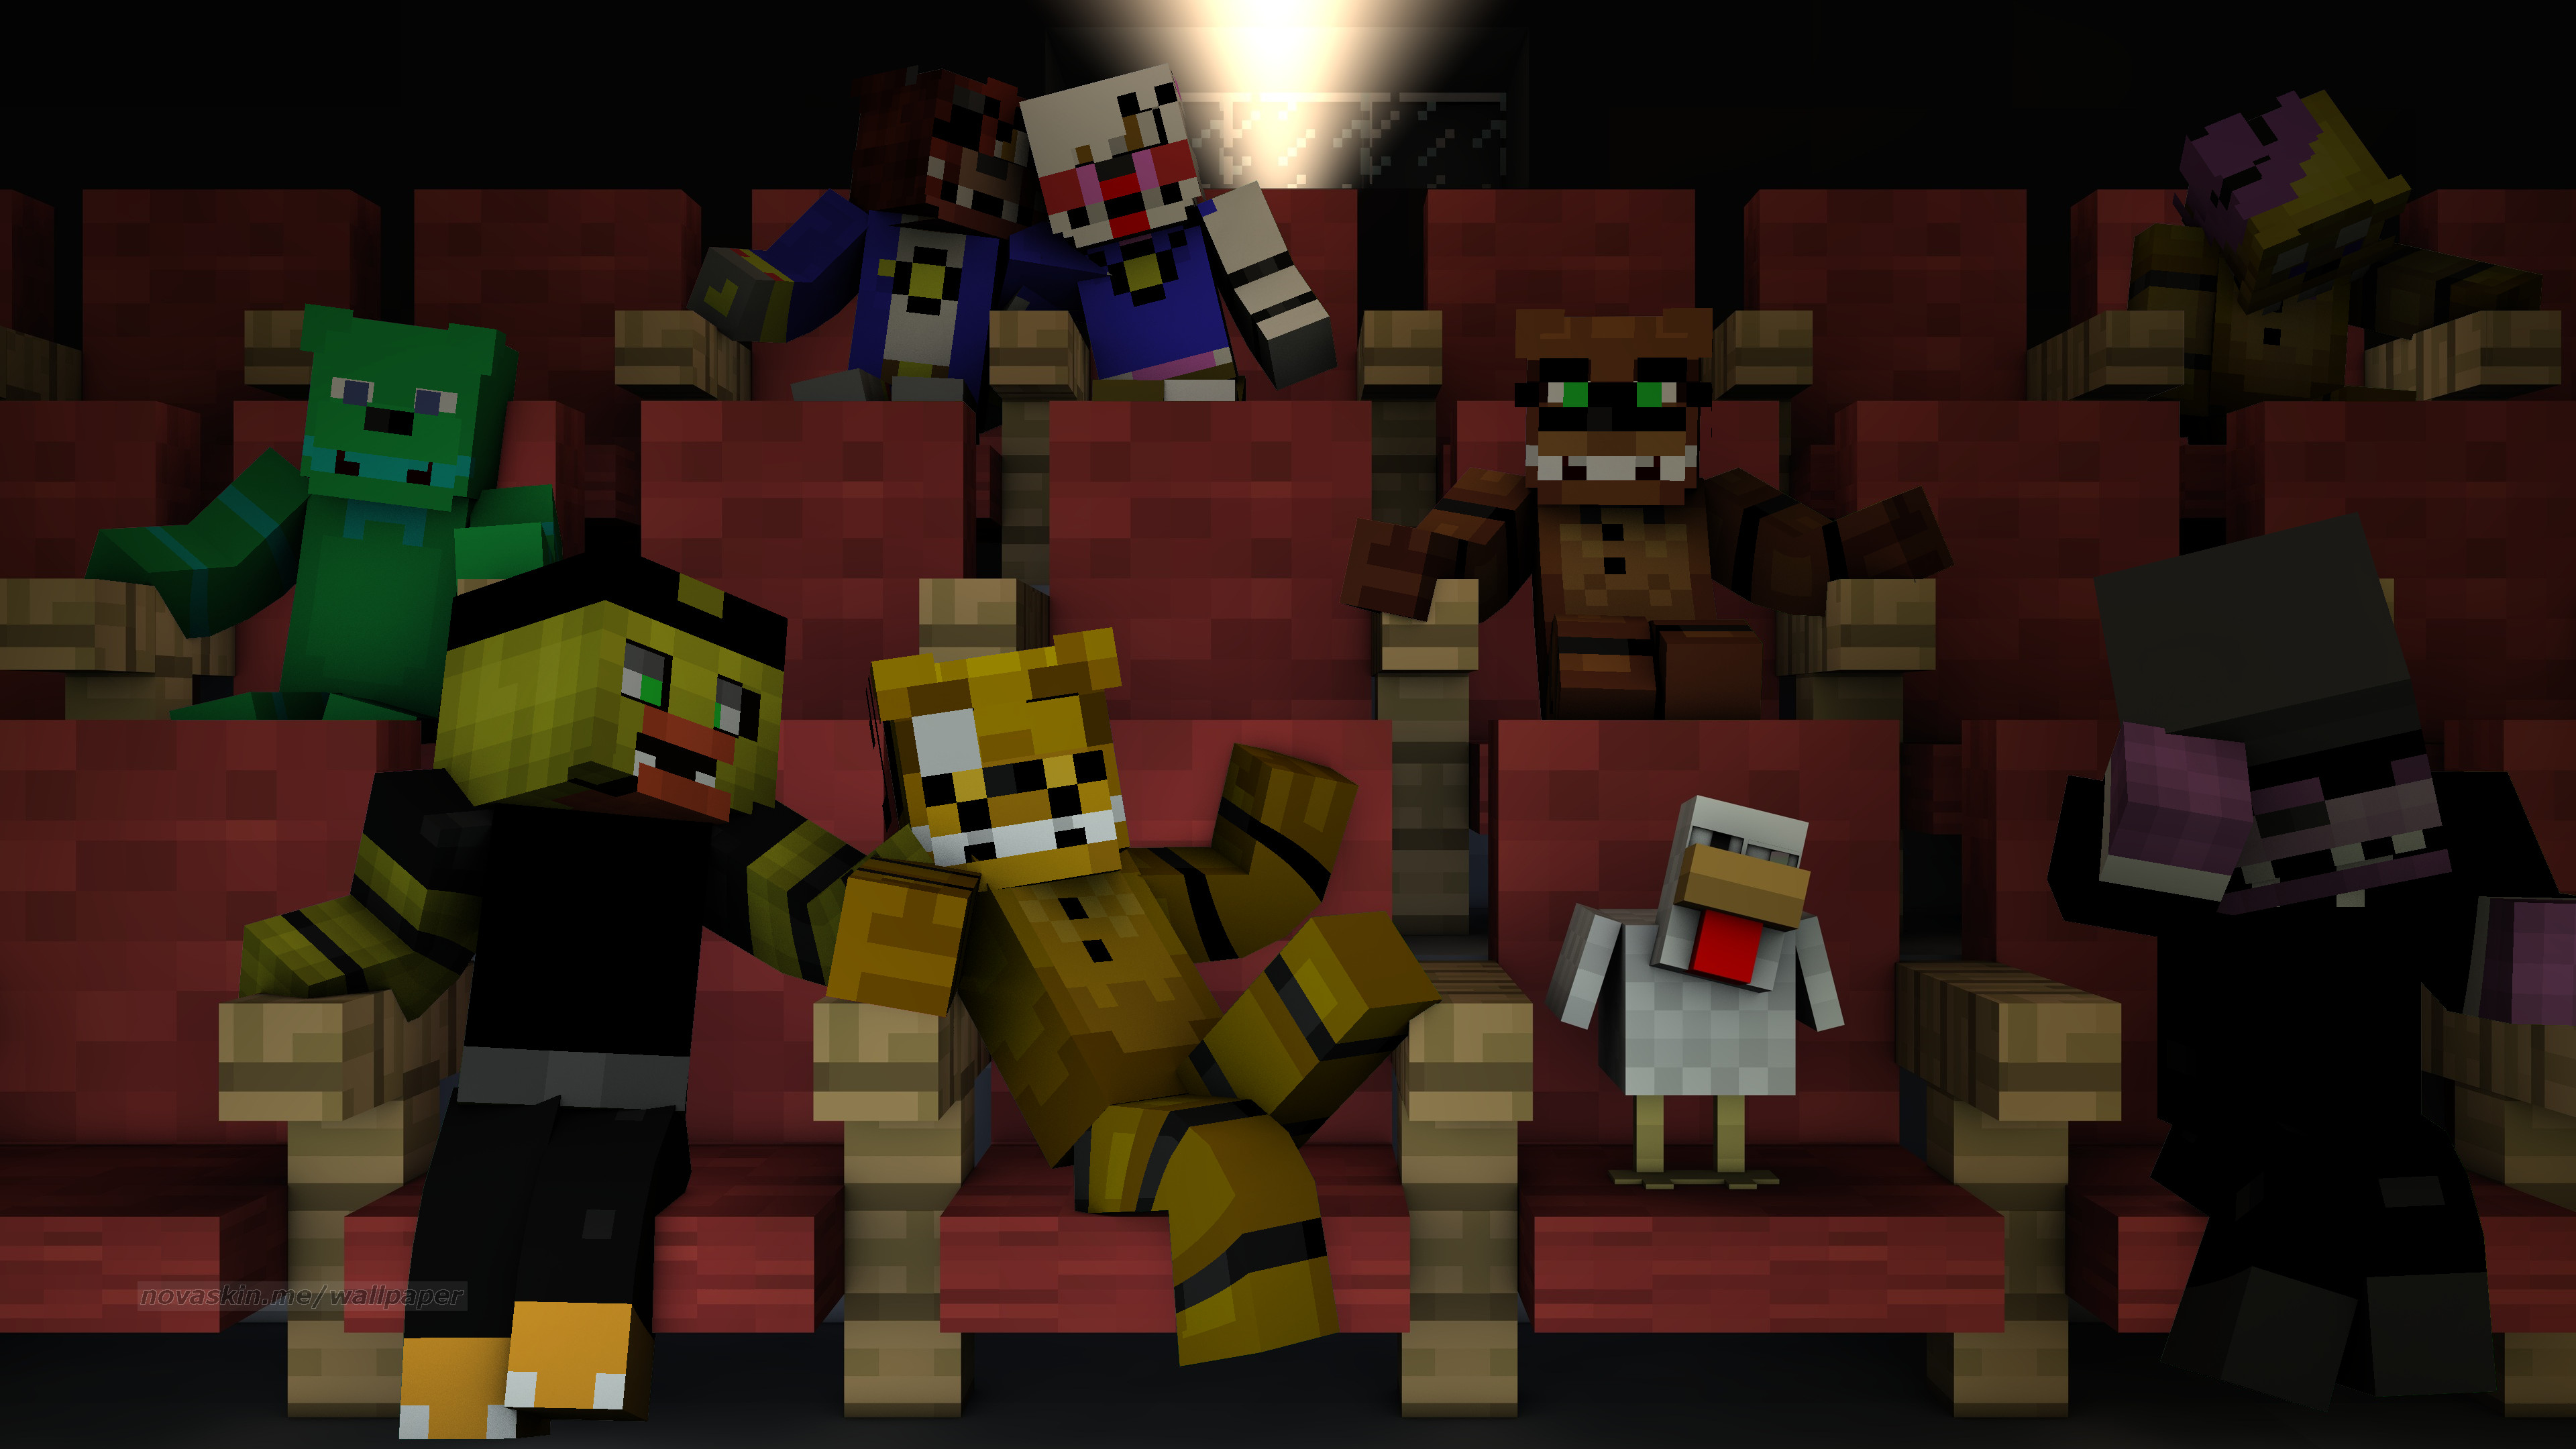 3840x2160 Filename: minecraft_theater_gift_wallpaper_by_foxymanmaster1987-d9jzb1y.png